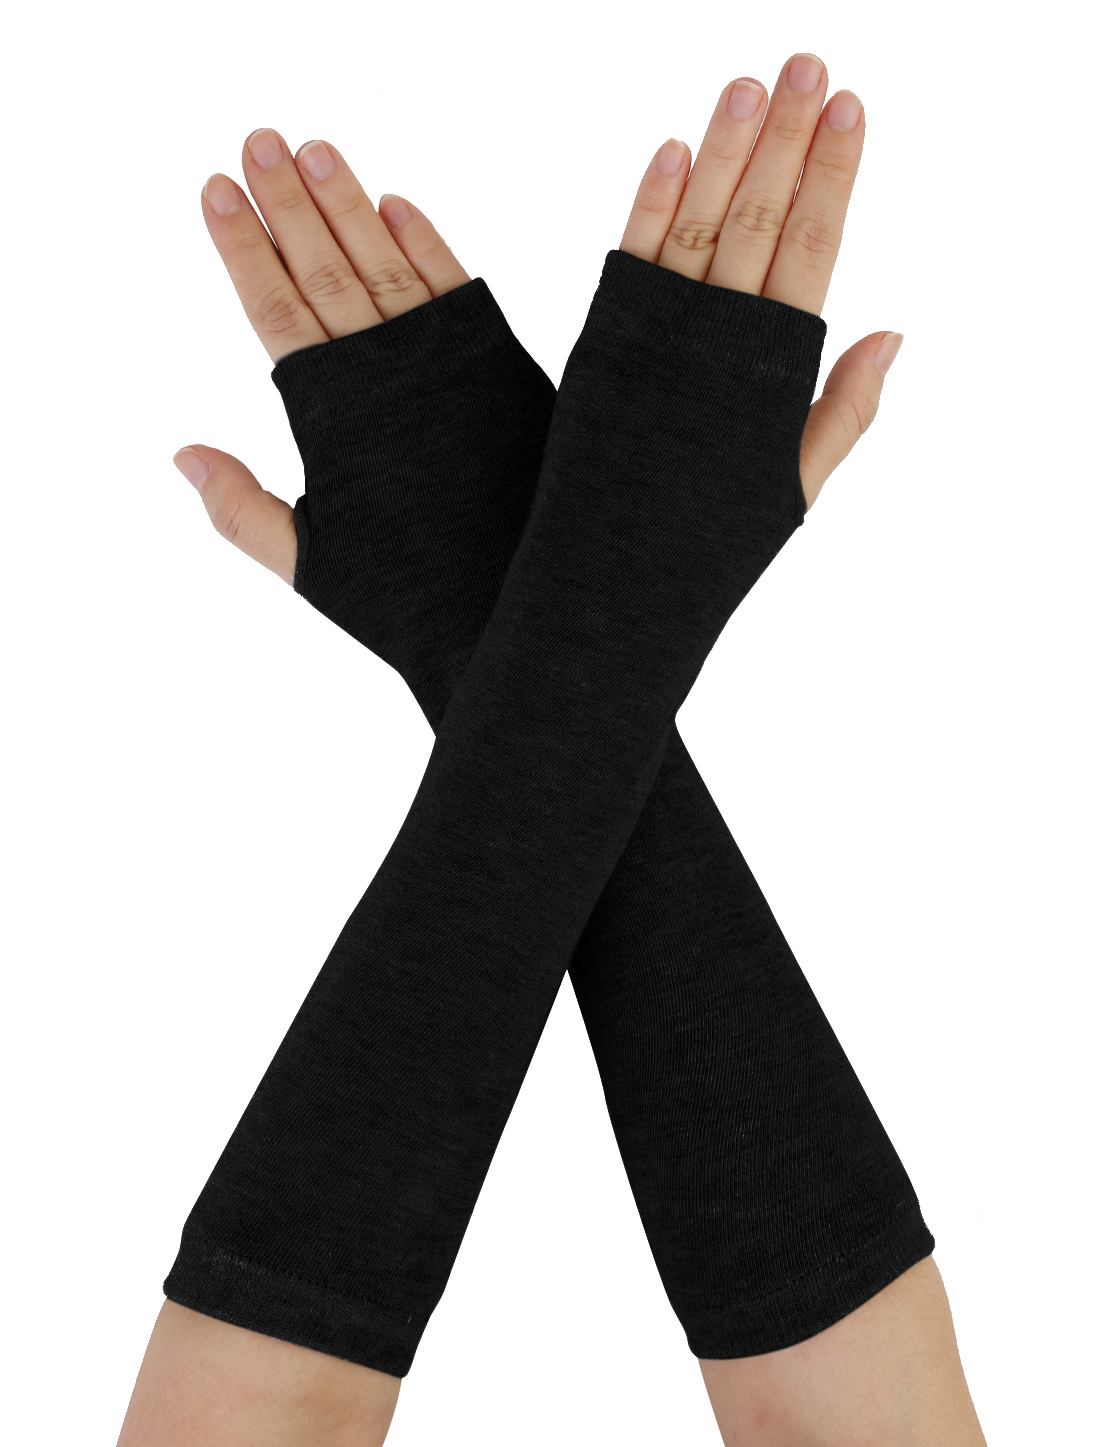 Unisex Classic Fashion Black Stretch Fingerless Arm Warmmer Oversleeve